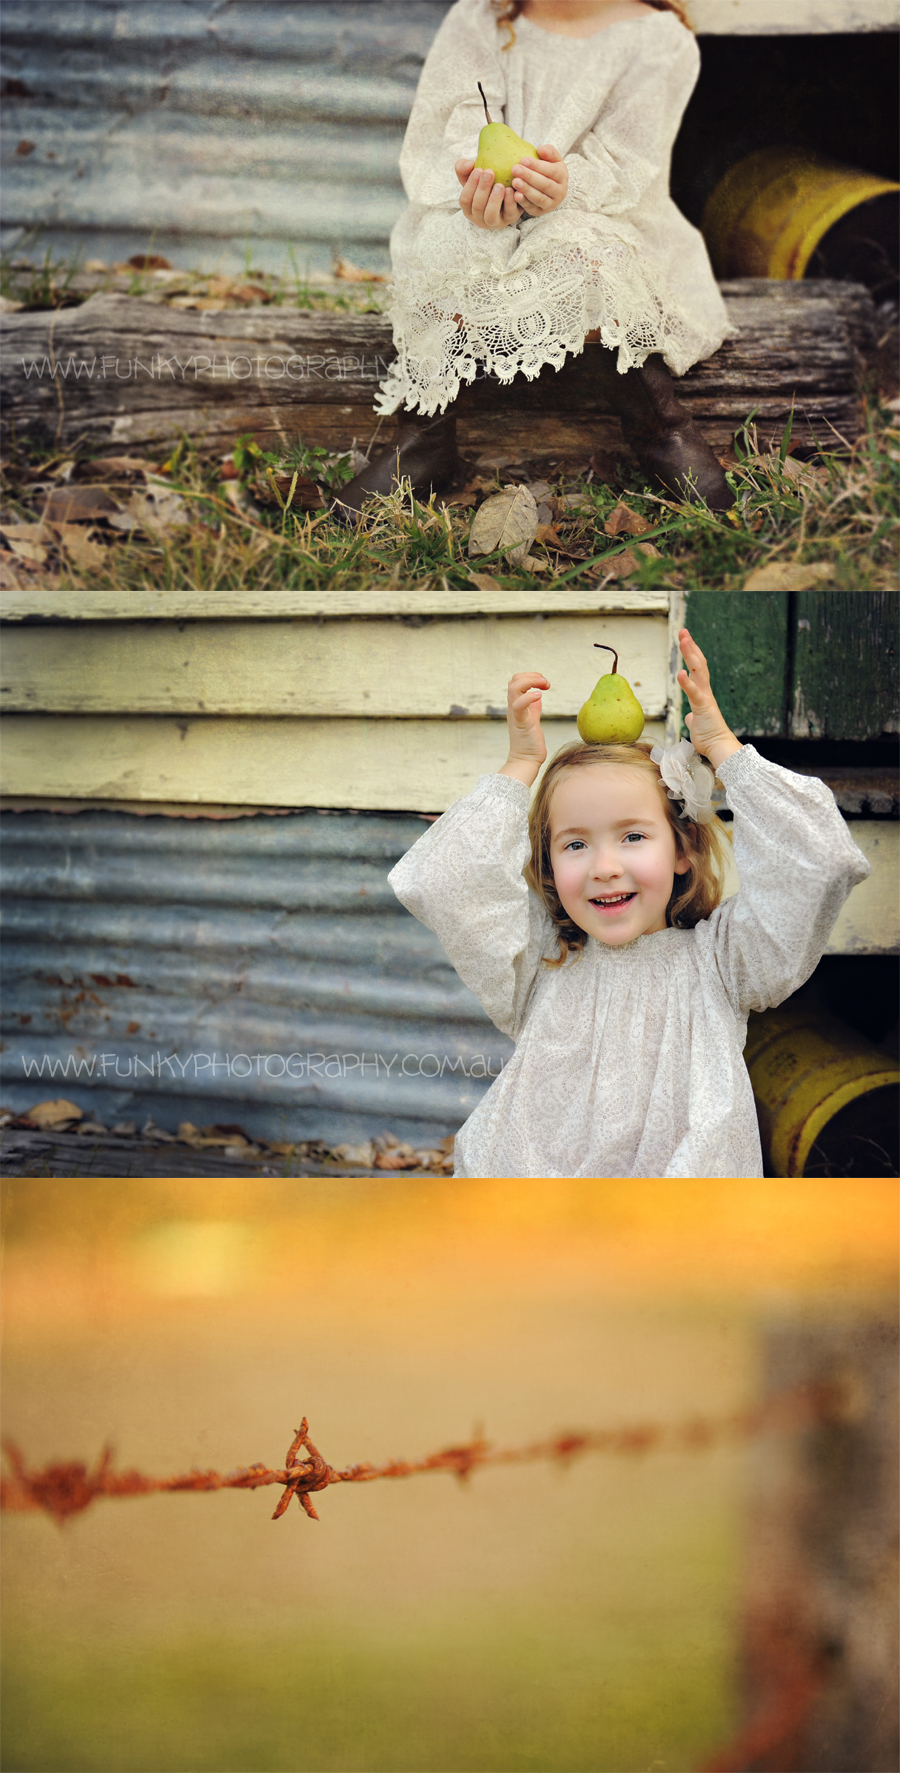 girl with a pear balancing on head and smiling